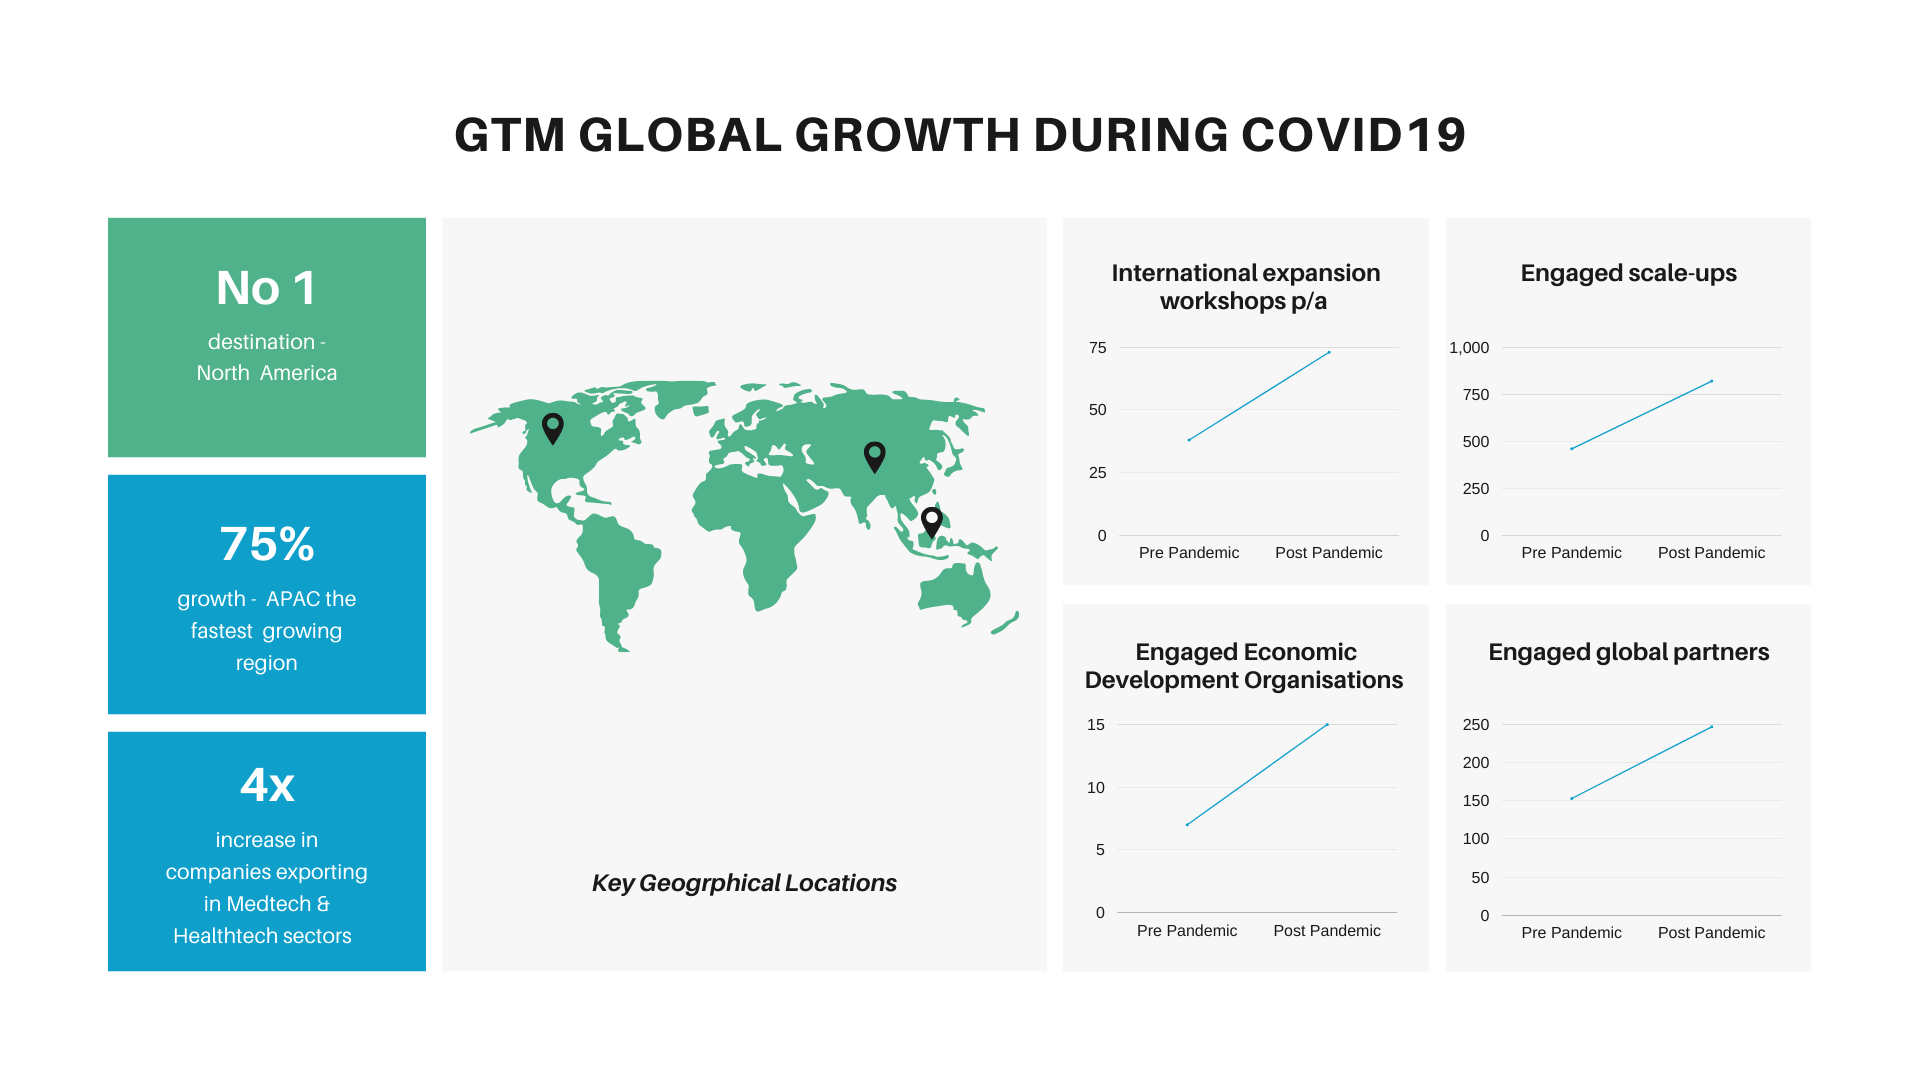 GTM Growth During Covid 19